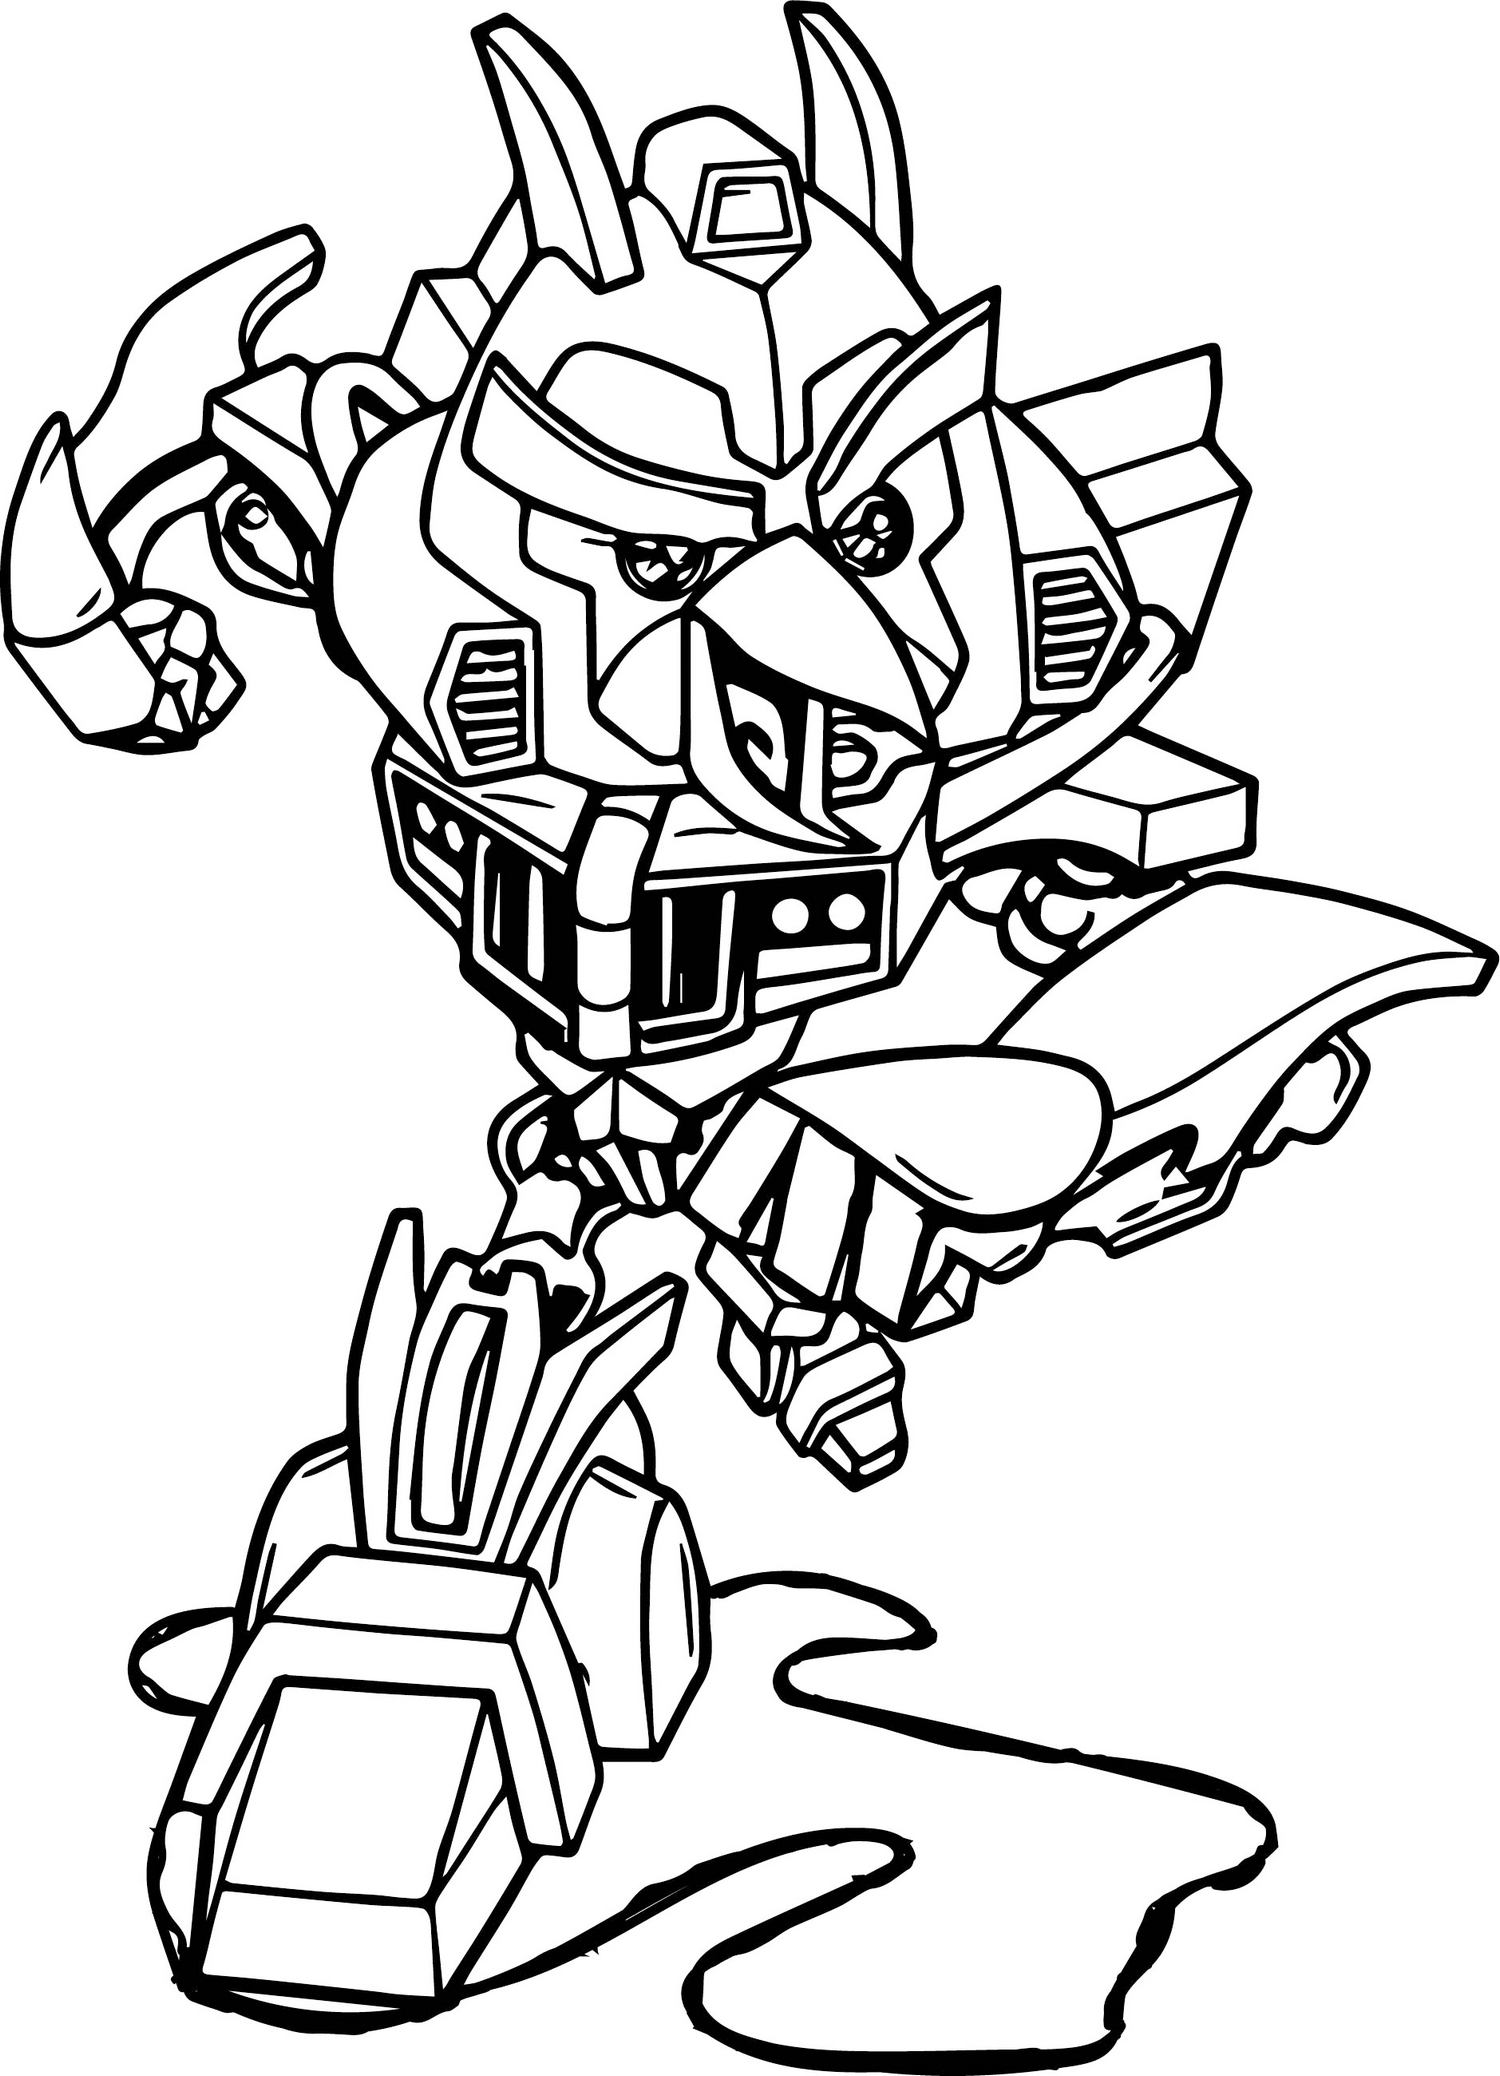 Angry Bird Transformers Bumblebee Coloring Sheet